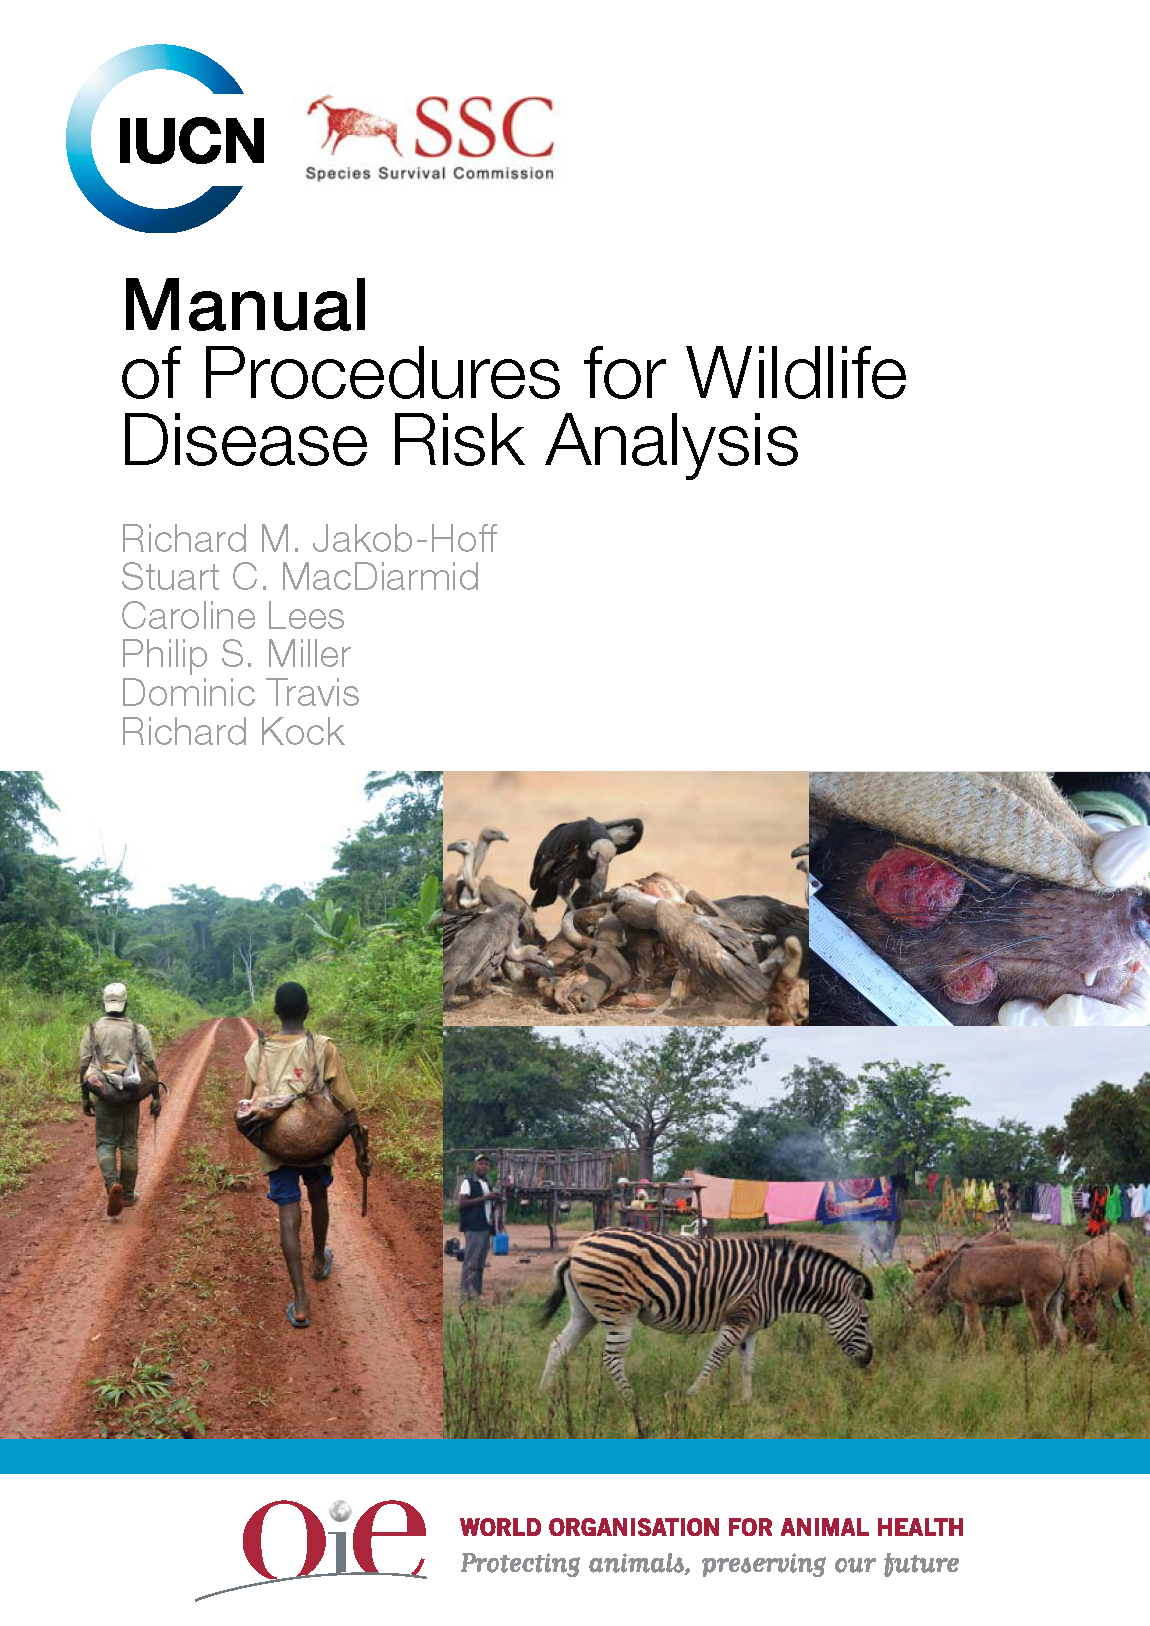 Capa da Manual of Procedures for Wildlife Disease Risk Analysis